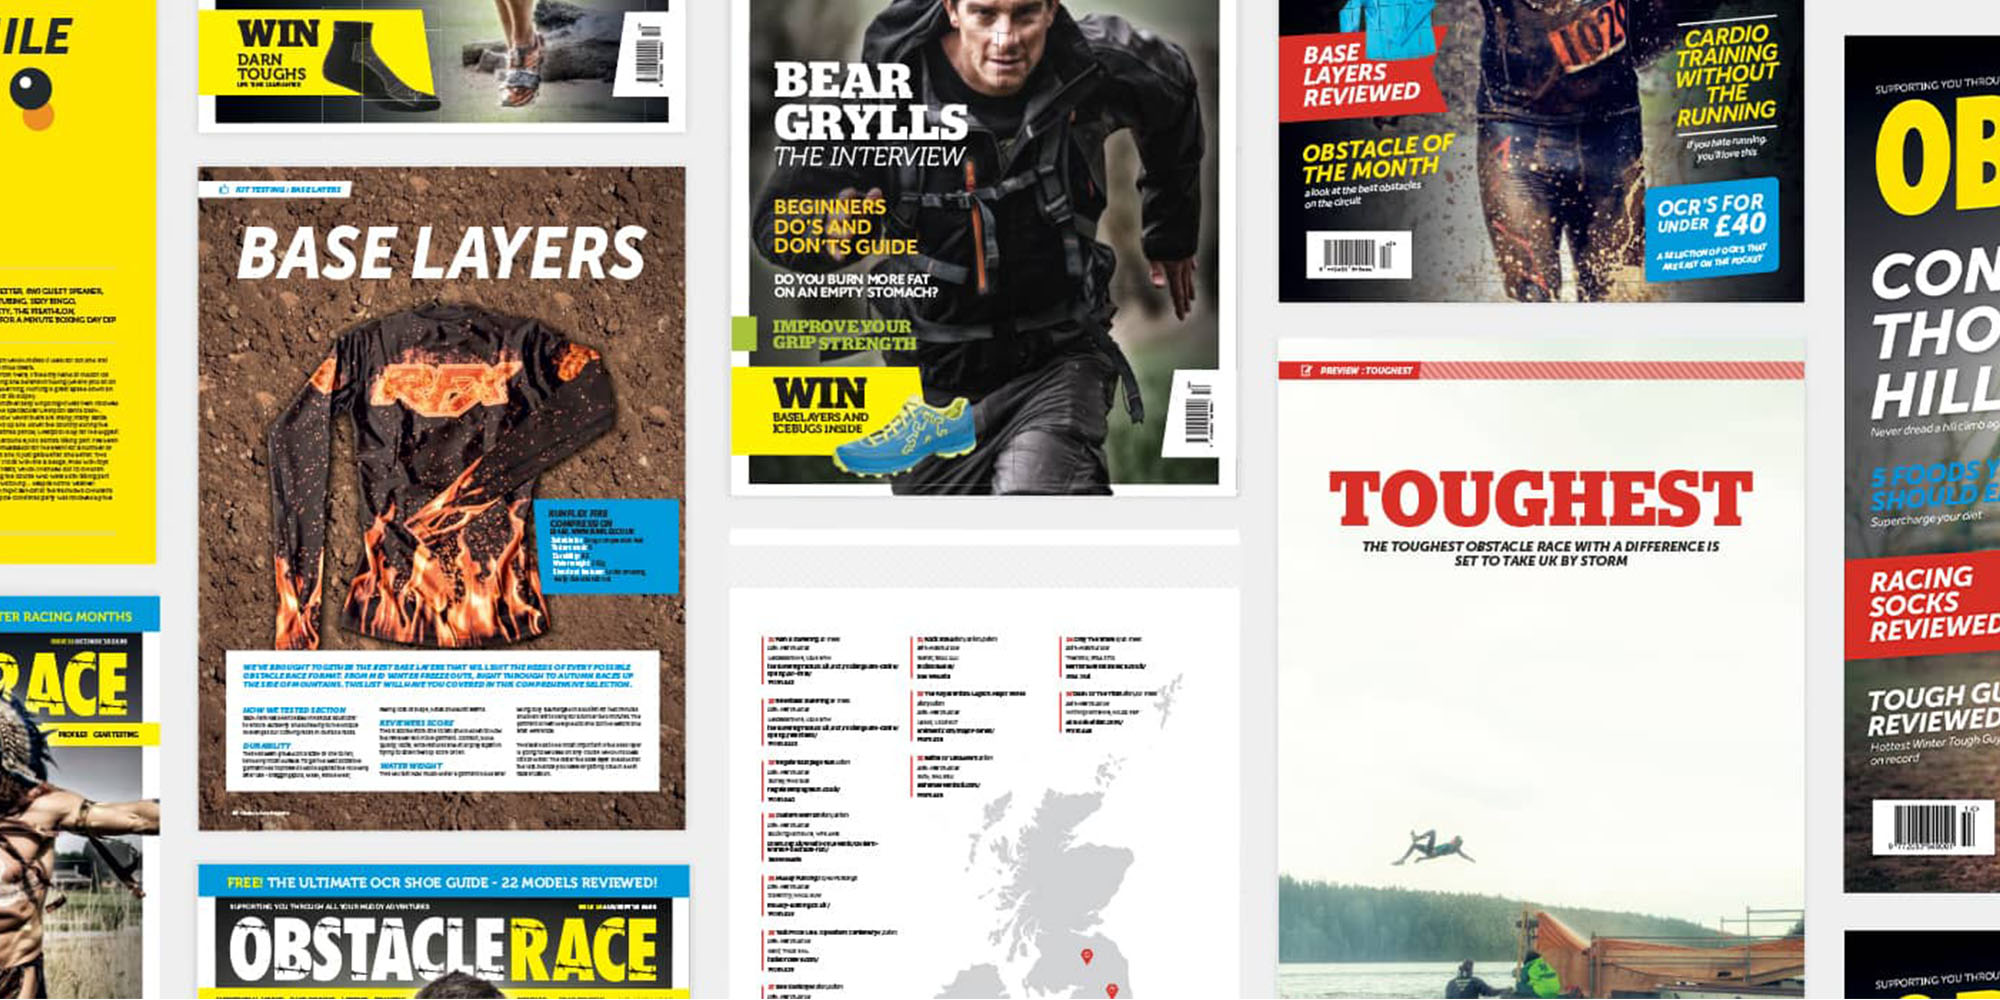 Obstacle Race Magazine